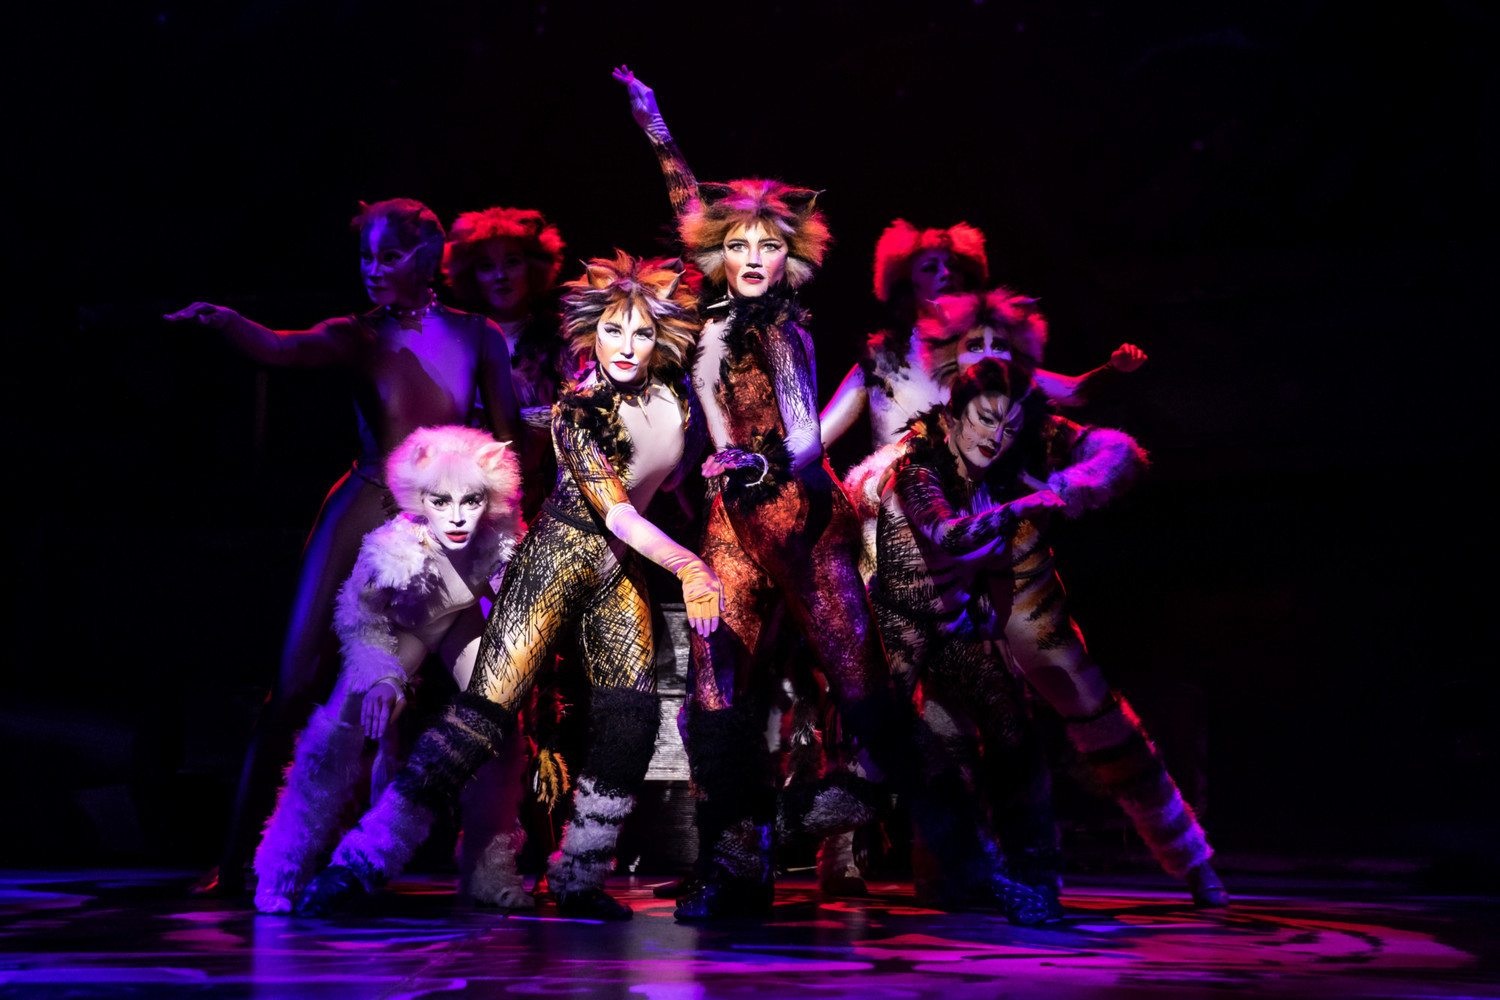 BWW Review: CATS at Popejoy Hall